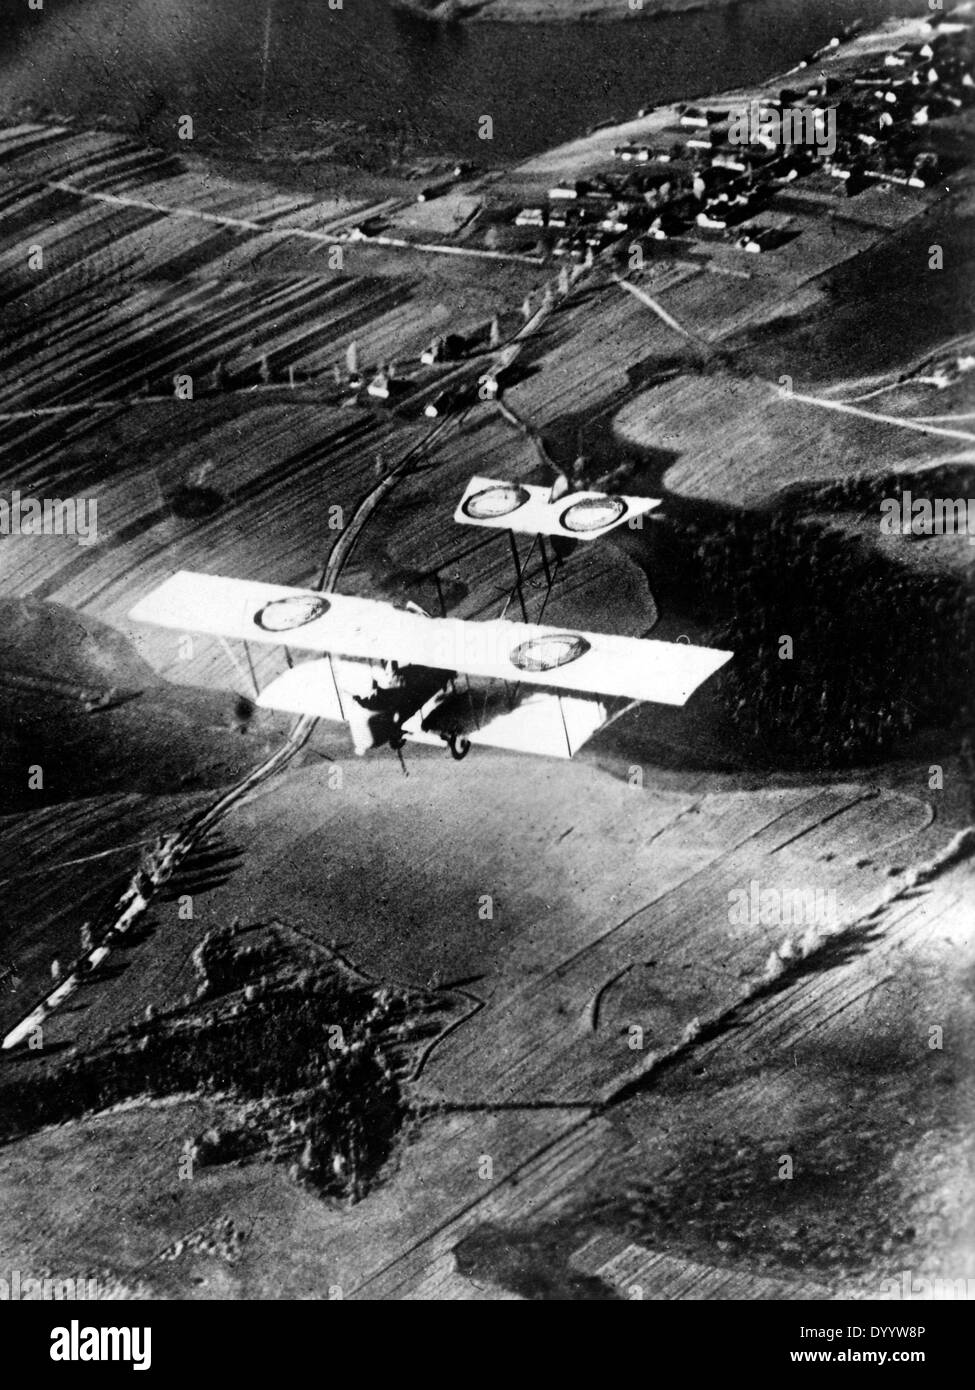 Emergency landing of a French recon aircraft at the western front, 1917 - Stock Image